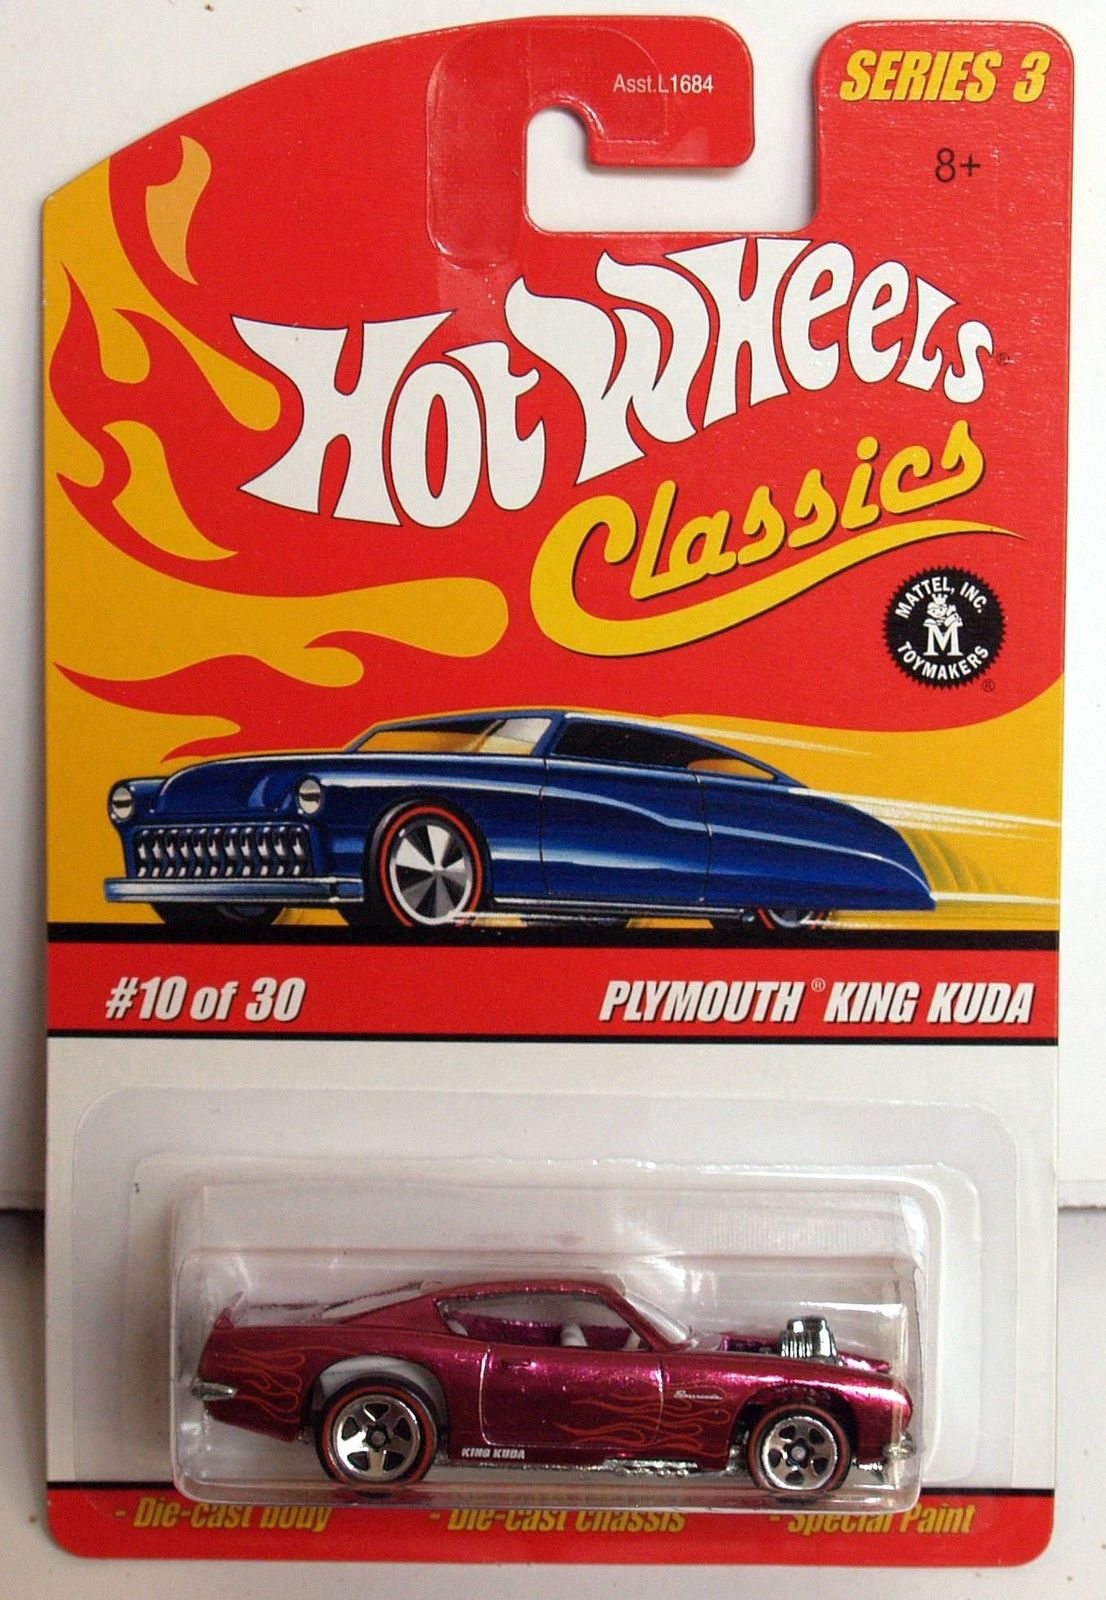 HOT WHEELS CLASSICS SERIES 3 #10/30 PLYMOUTH KING KUDA